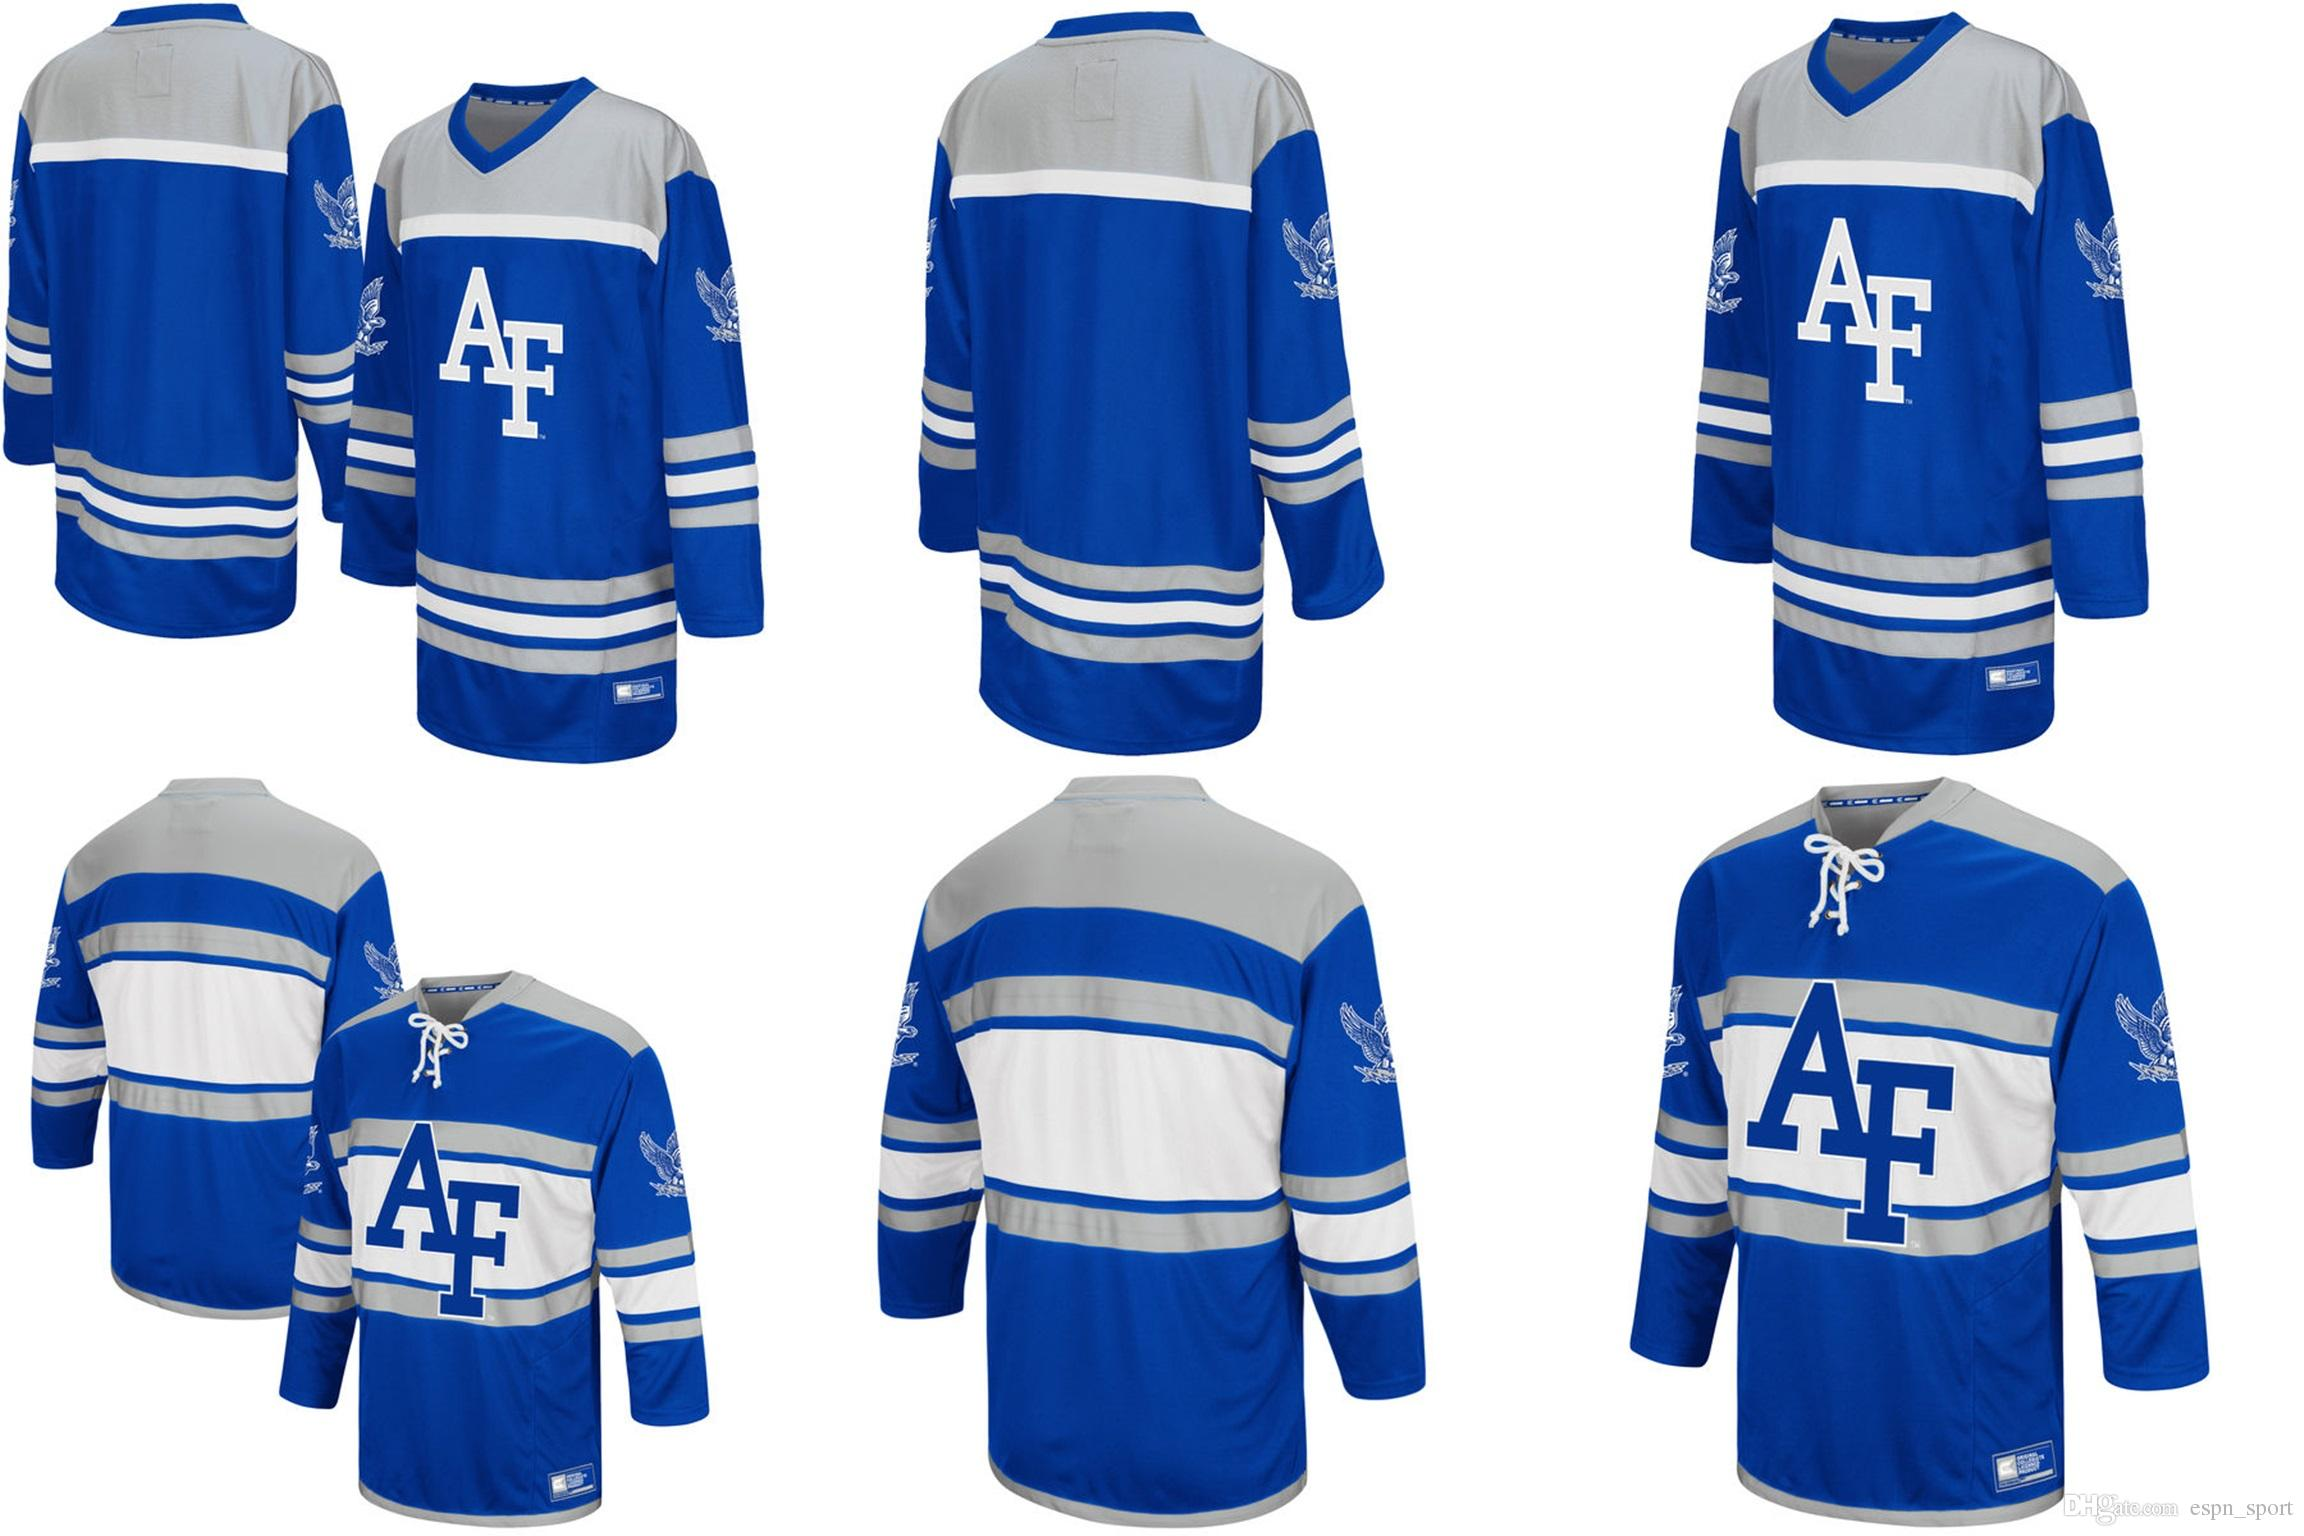 Customize Air Force Falcons Colosseum Blue Hockey Jersey Mens Womens Kids  Custom Any Name NO.Best Quality Ice Hockey Jerseys S 6XL UK 2019 From  Espn sport 4d7e03df4a7